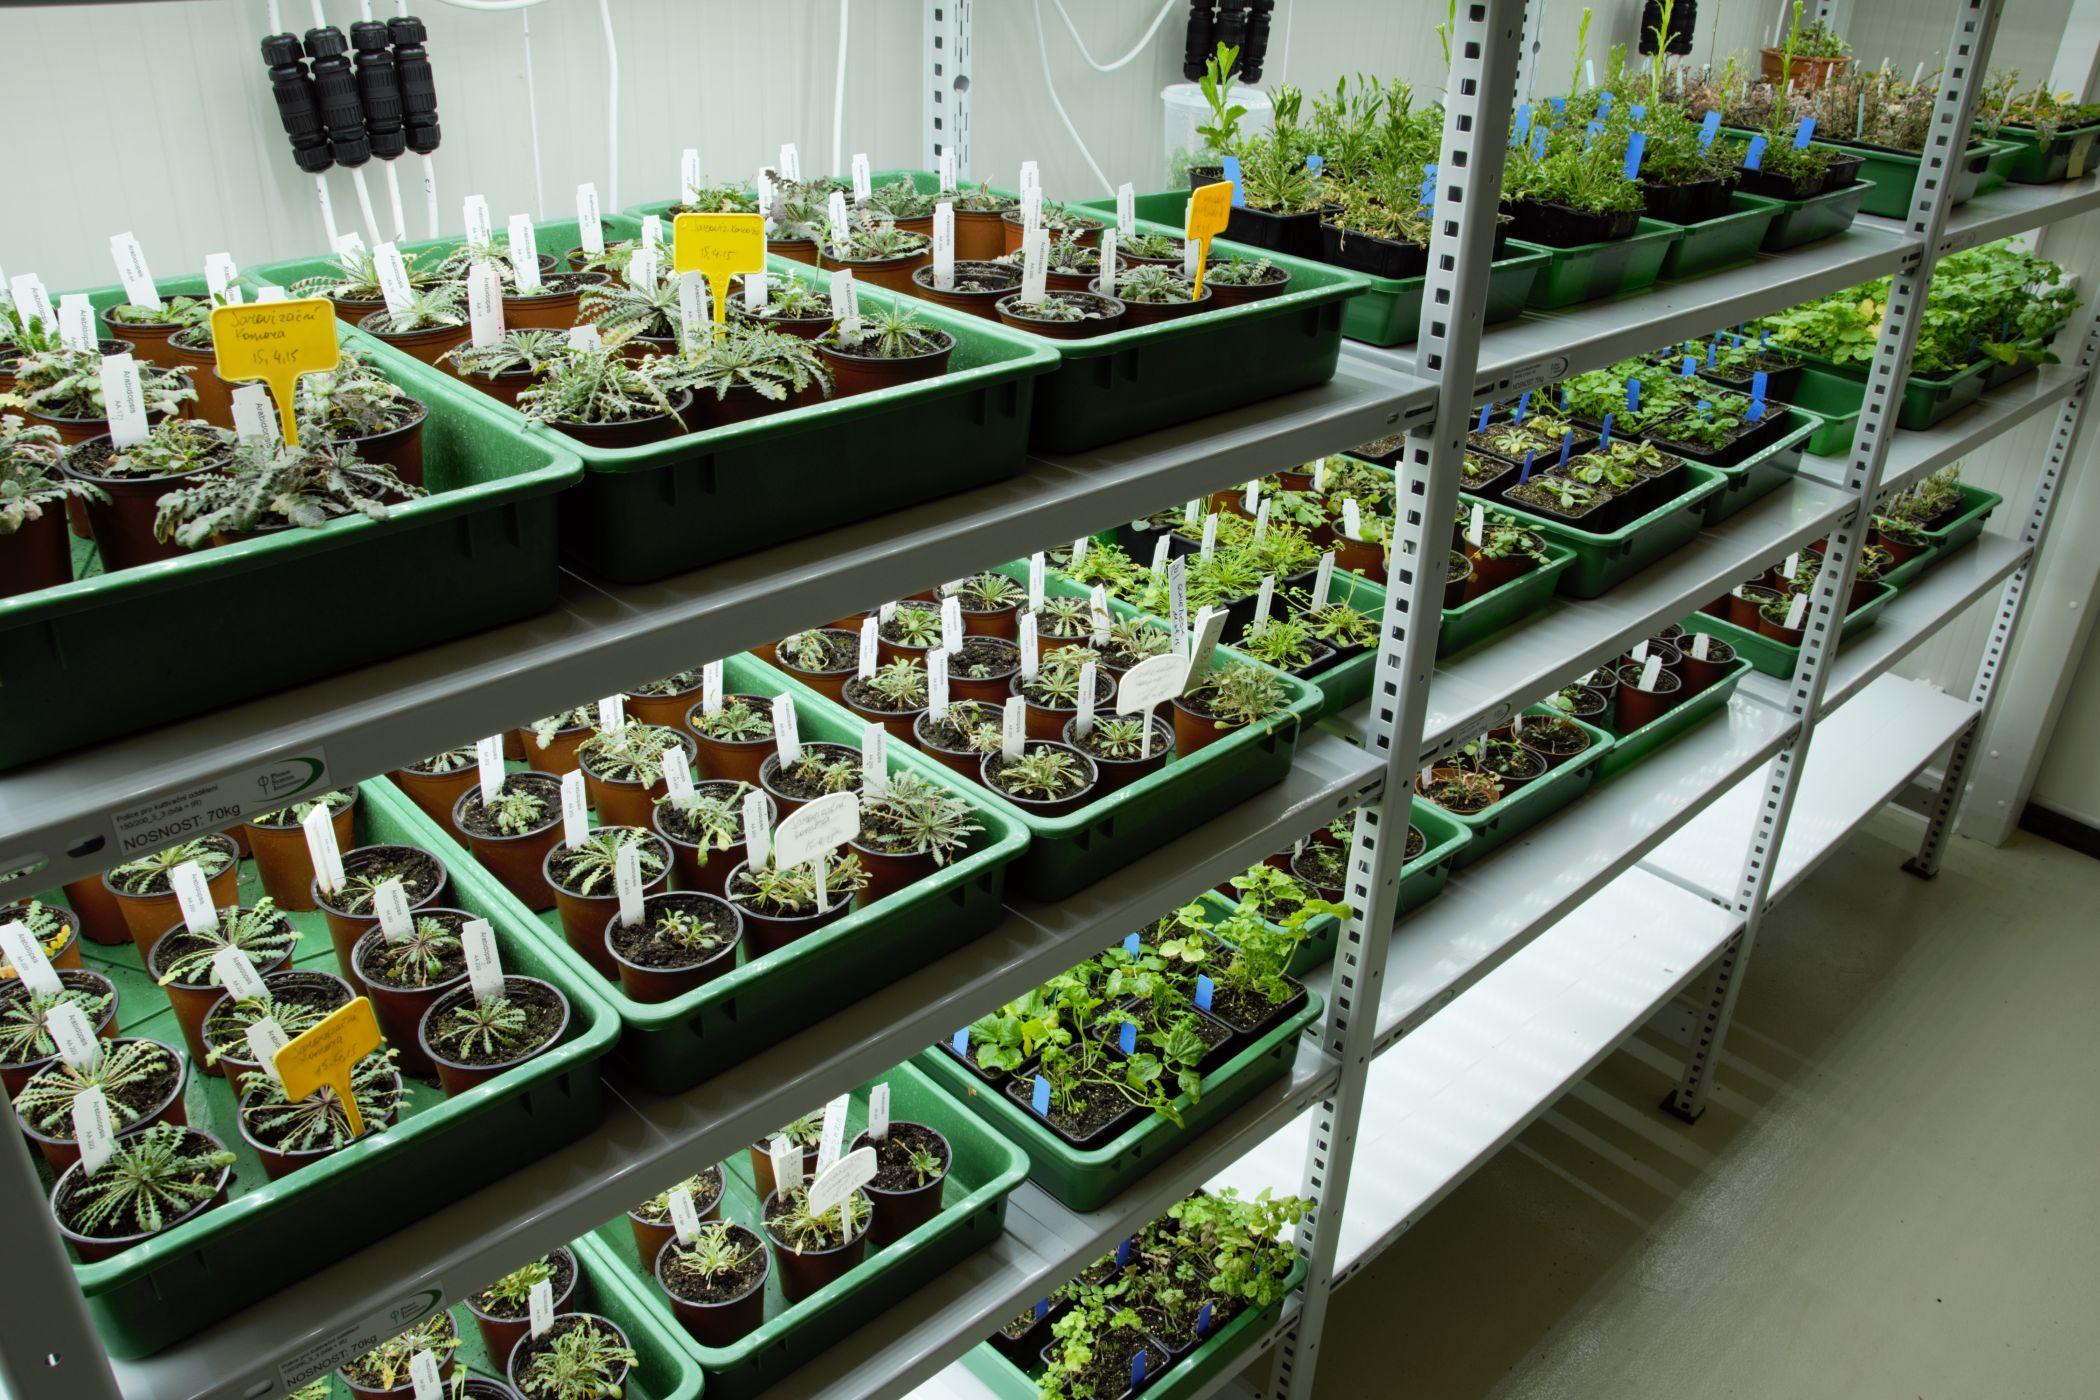 Cultivation Shelves Growth Chambers